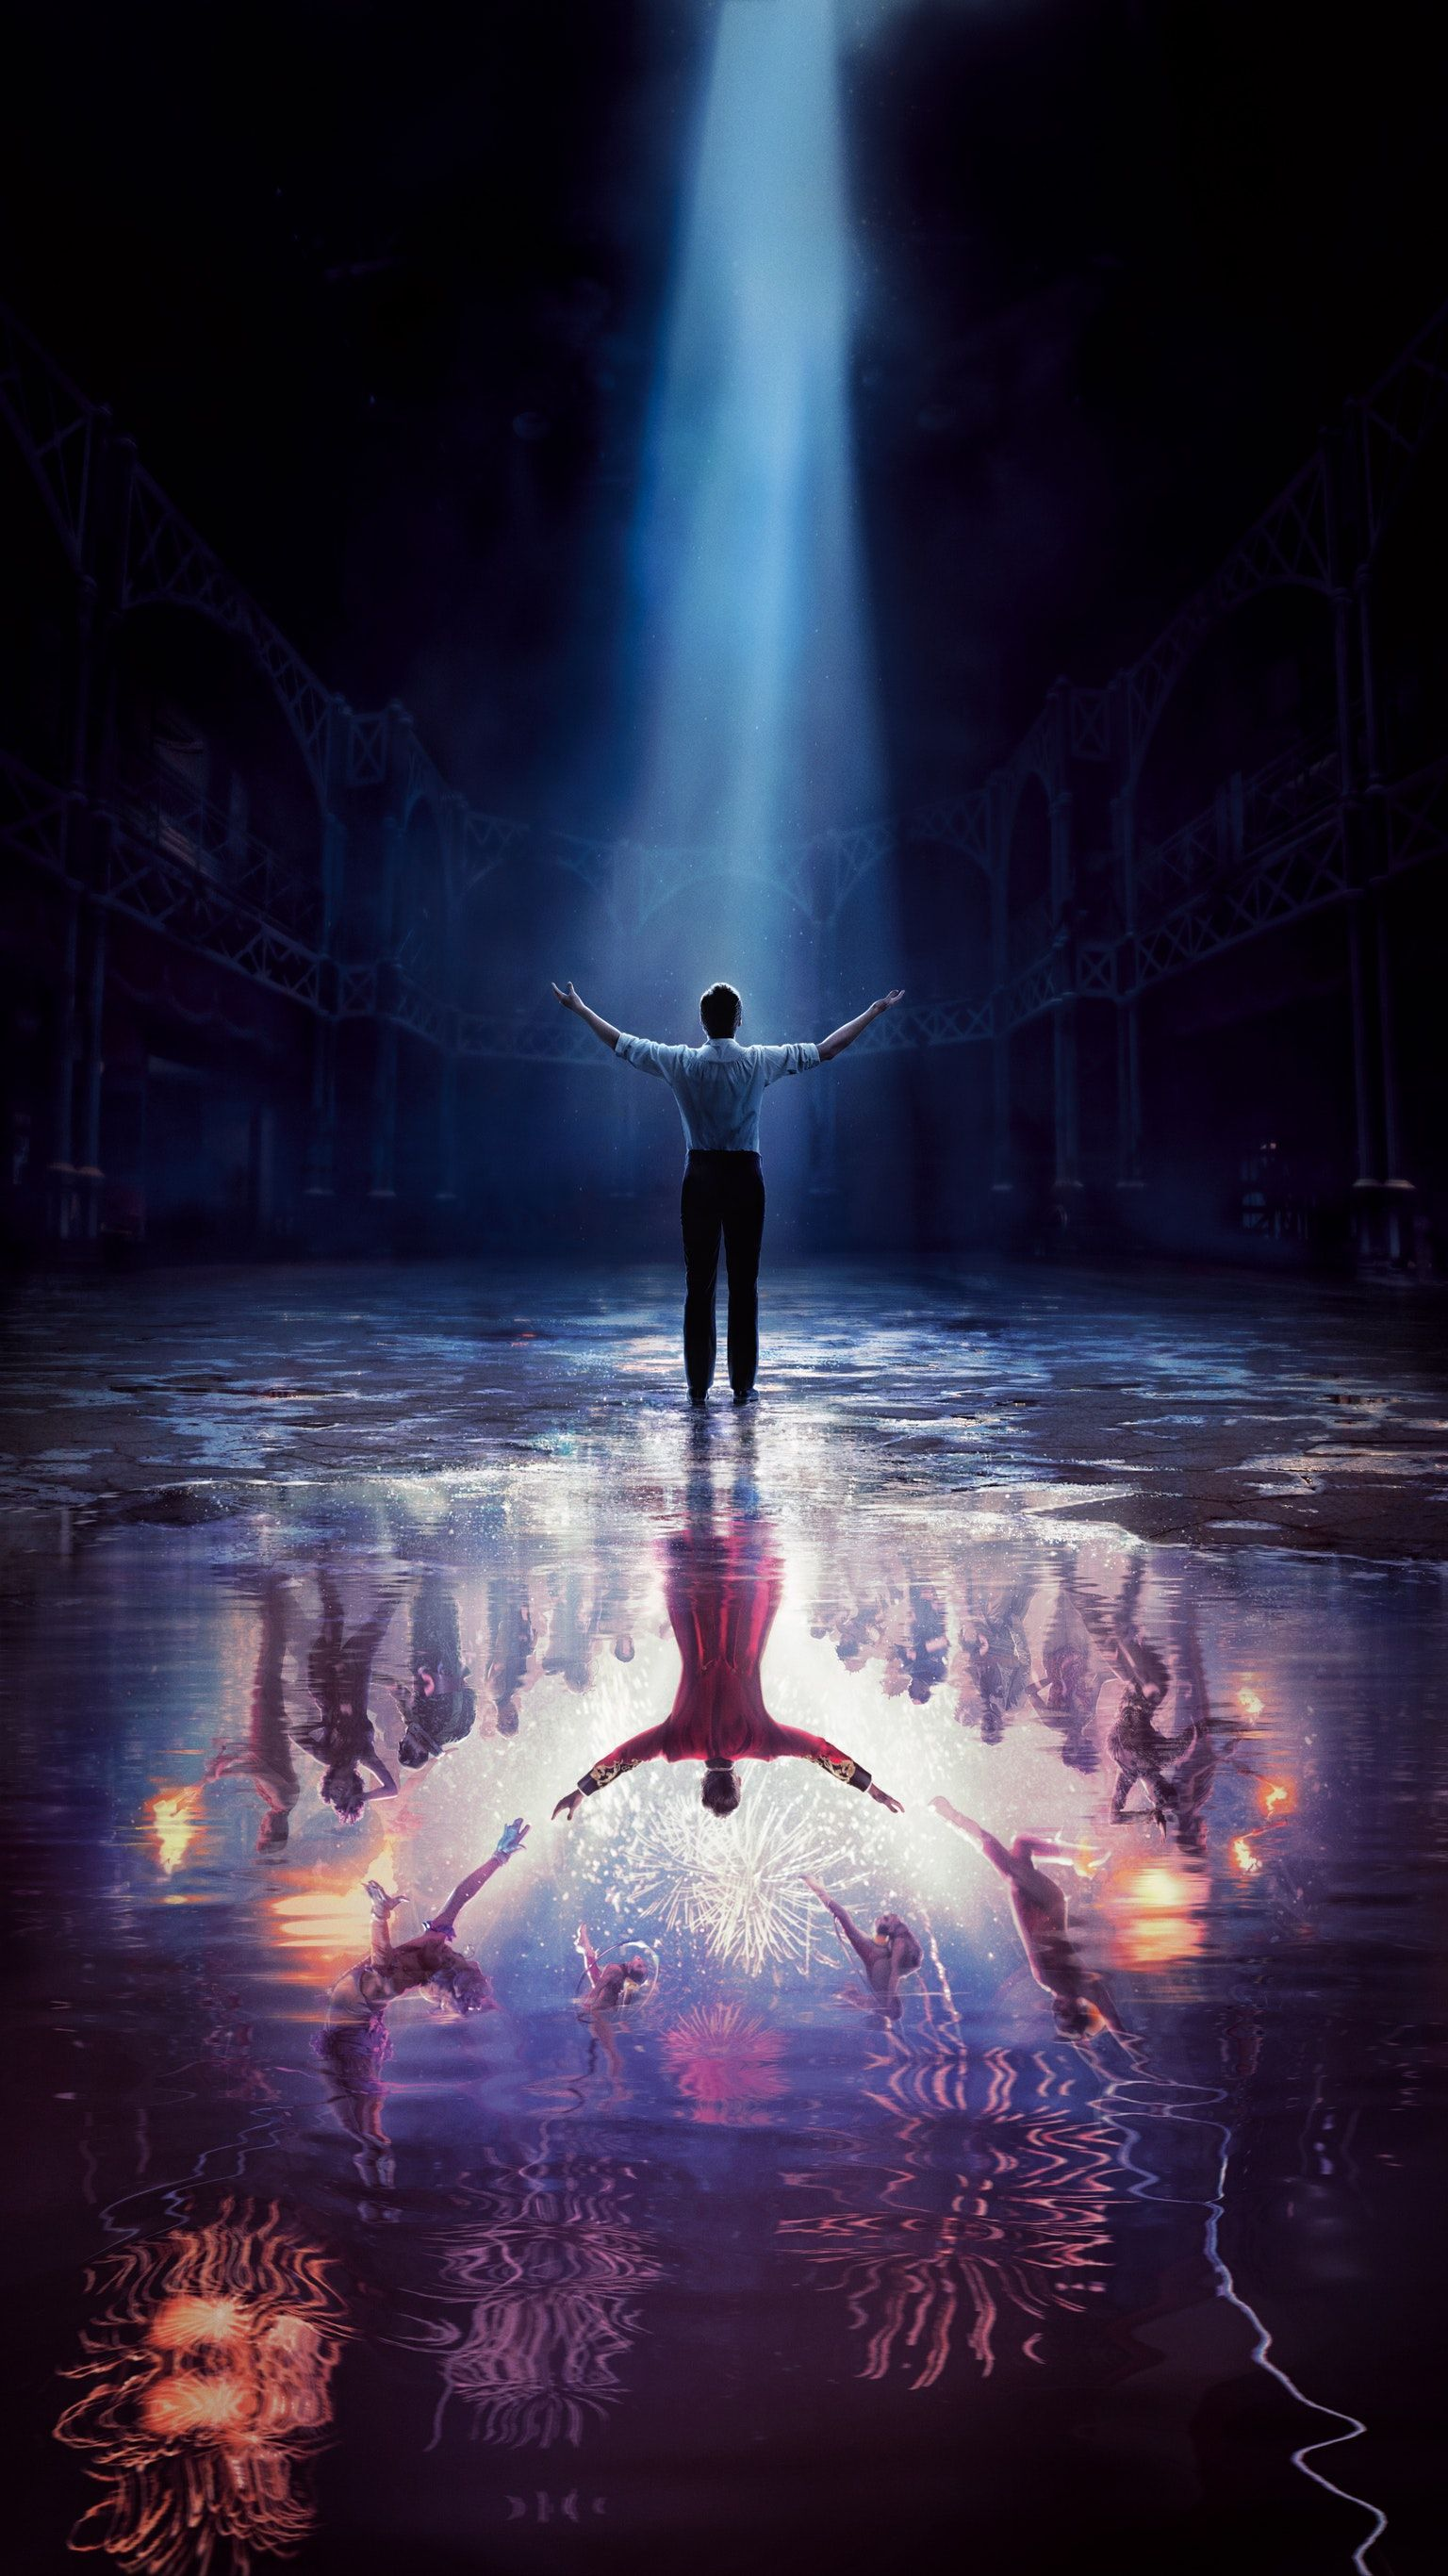 The Greatest Showman 2017 Phone Wallpaper Moviemania The Greatest Showman Movie Wallpapers Greatful